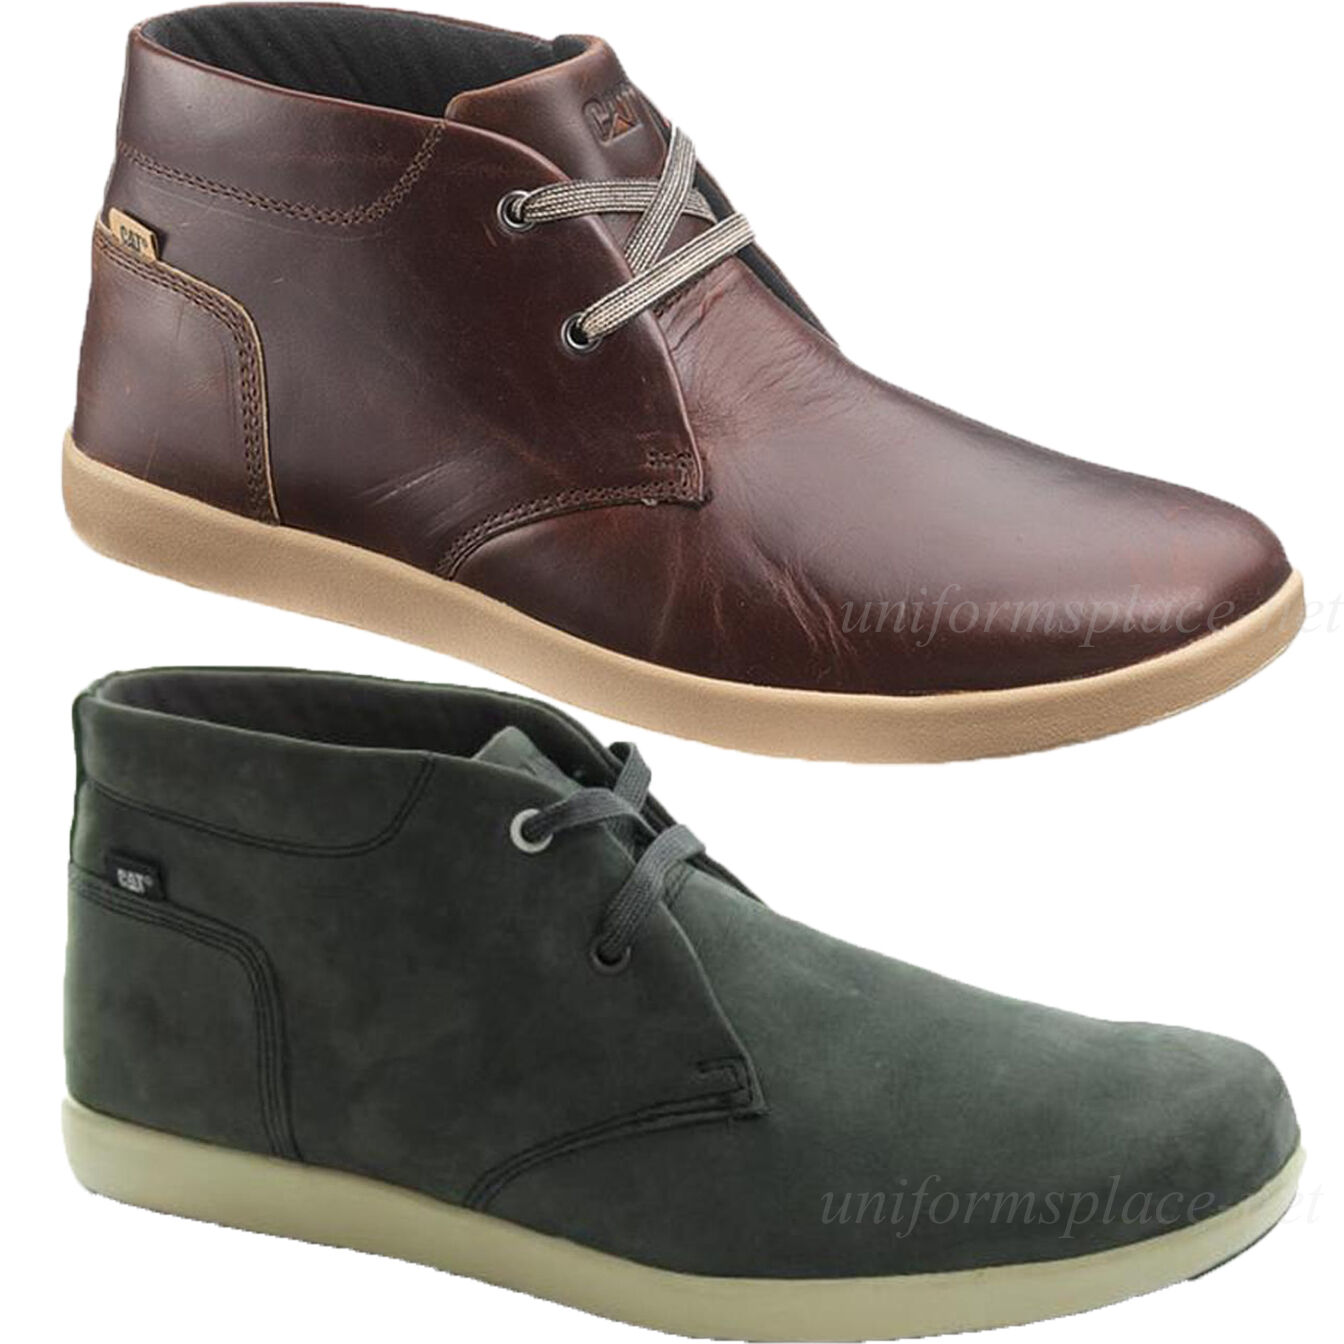 Scarpe casual da uomo  Caterpillar Shoes uomos Beck Mid Leather Work Dress Casual Shoes CAT Gray Oxblood